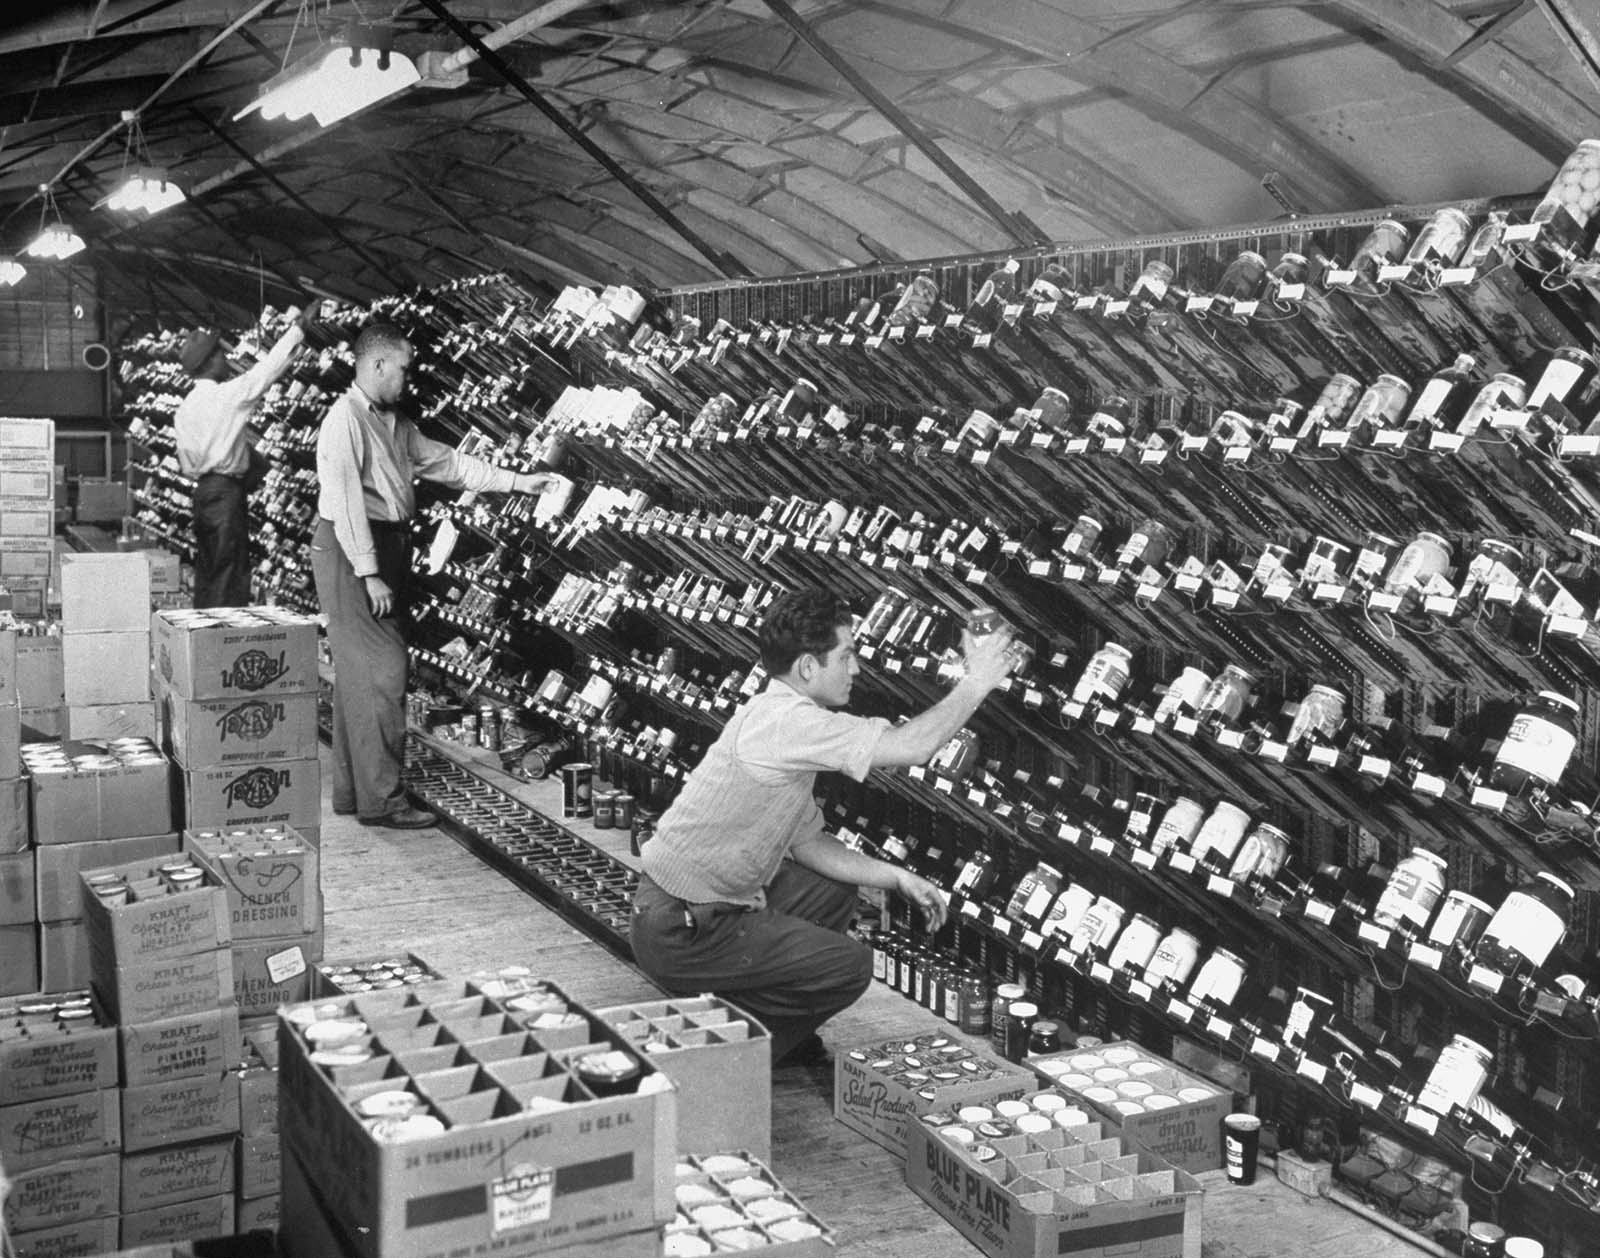 A worker stocks the grocery chutes in the Keedoozle.